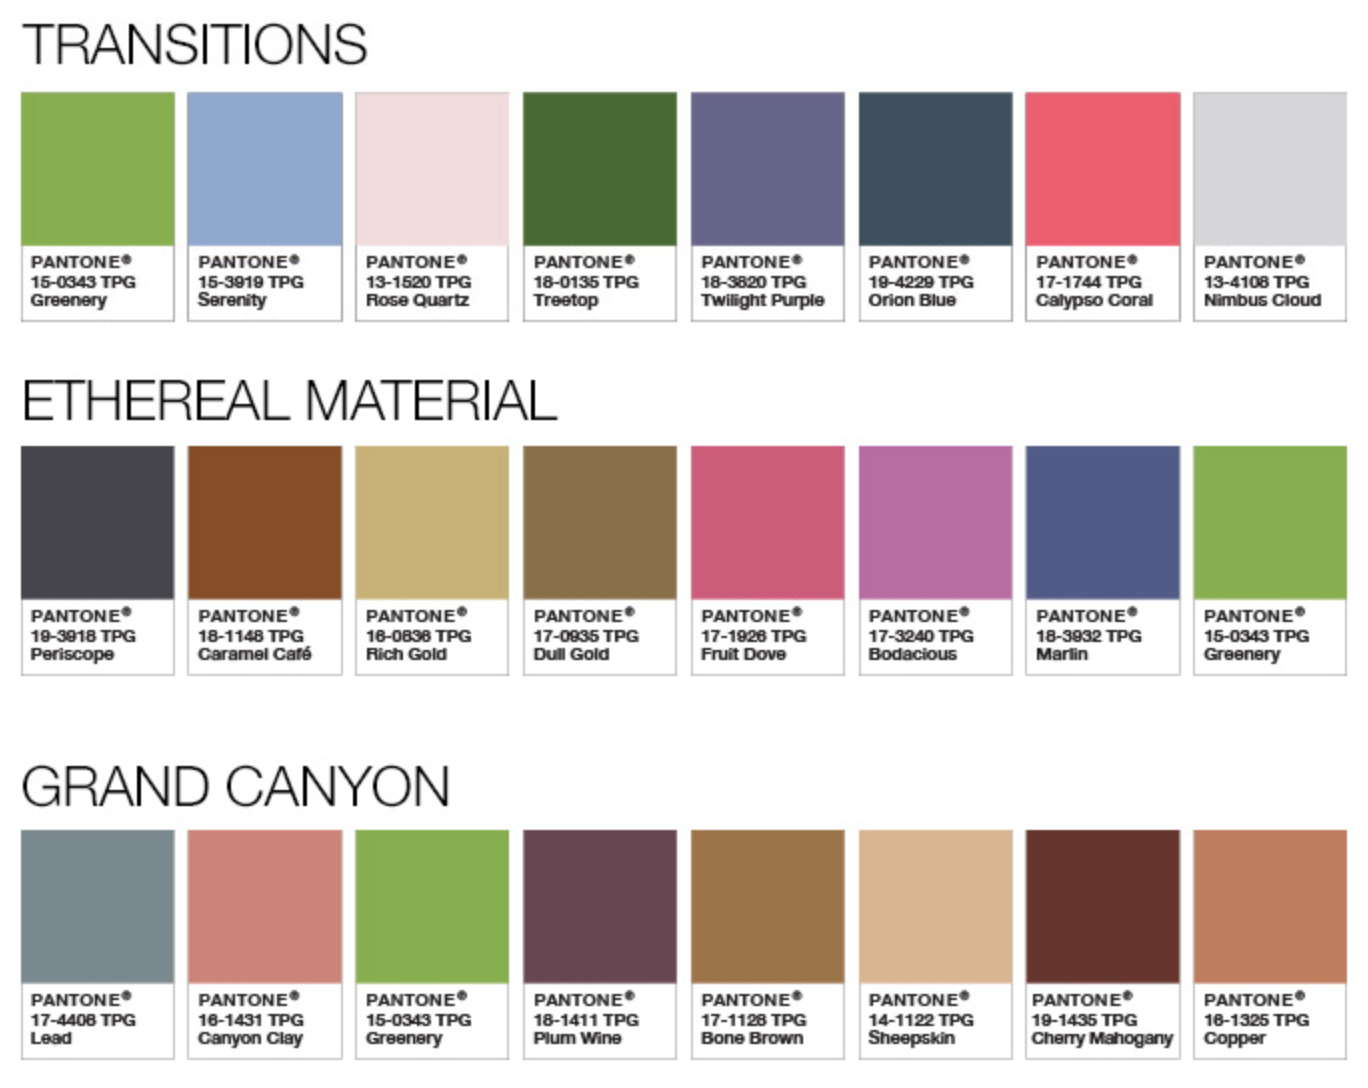 Pantone Color Palettes 2017 Transitions Ethereal Material Grand Canyon